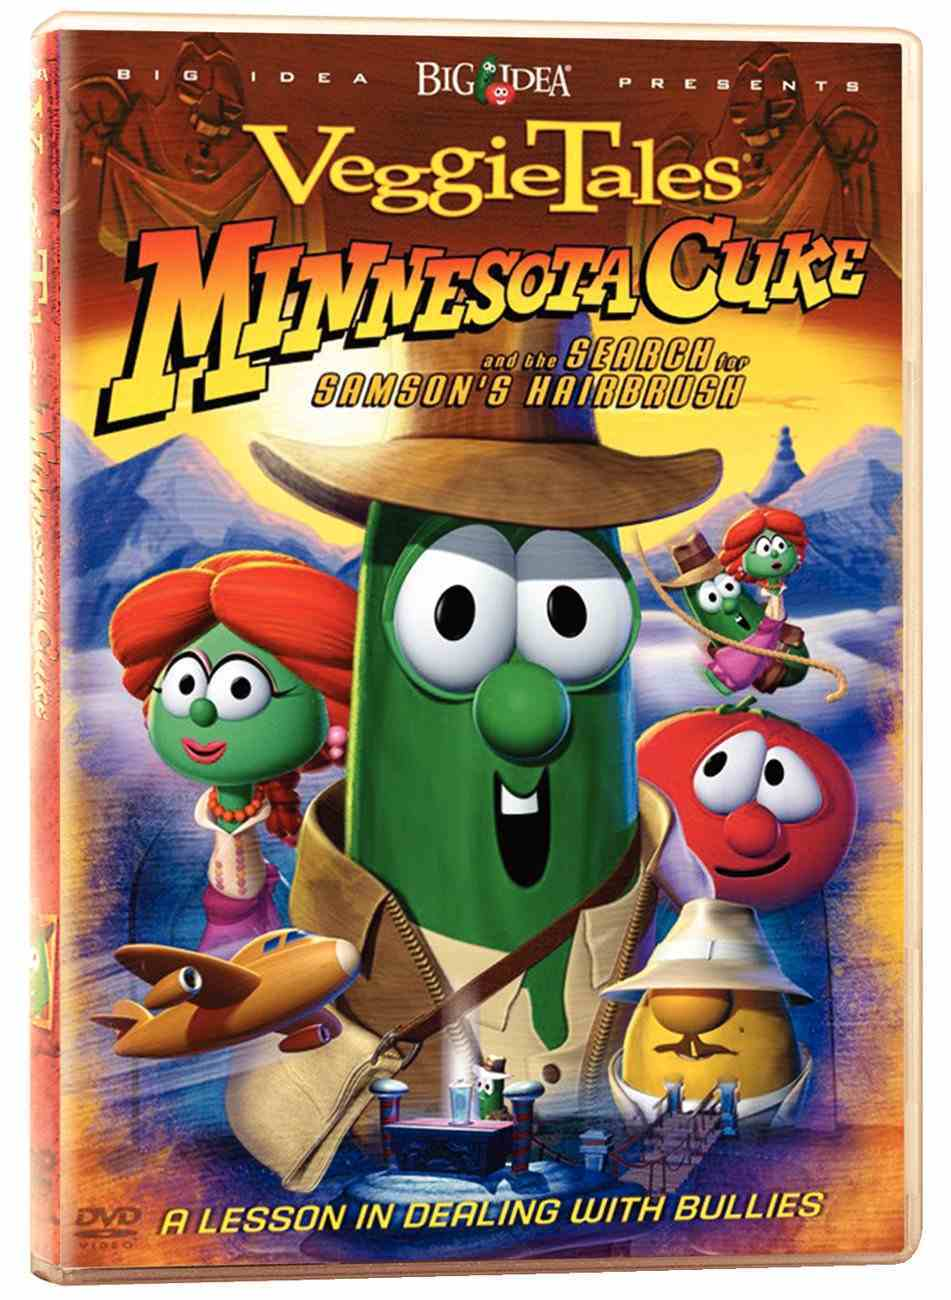 Veggie Tales #24: Minnesota Cuke & the Search For Samson's Hairbrush (#024 in Veggie Tales Visual Series (Veggietales)) DVD